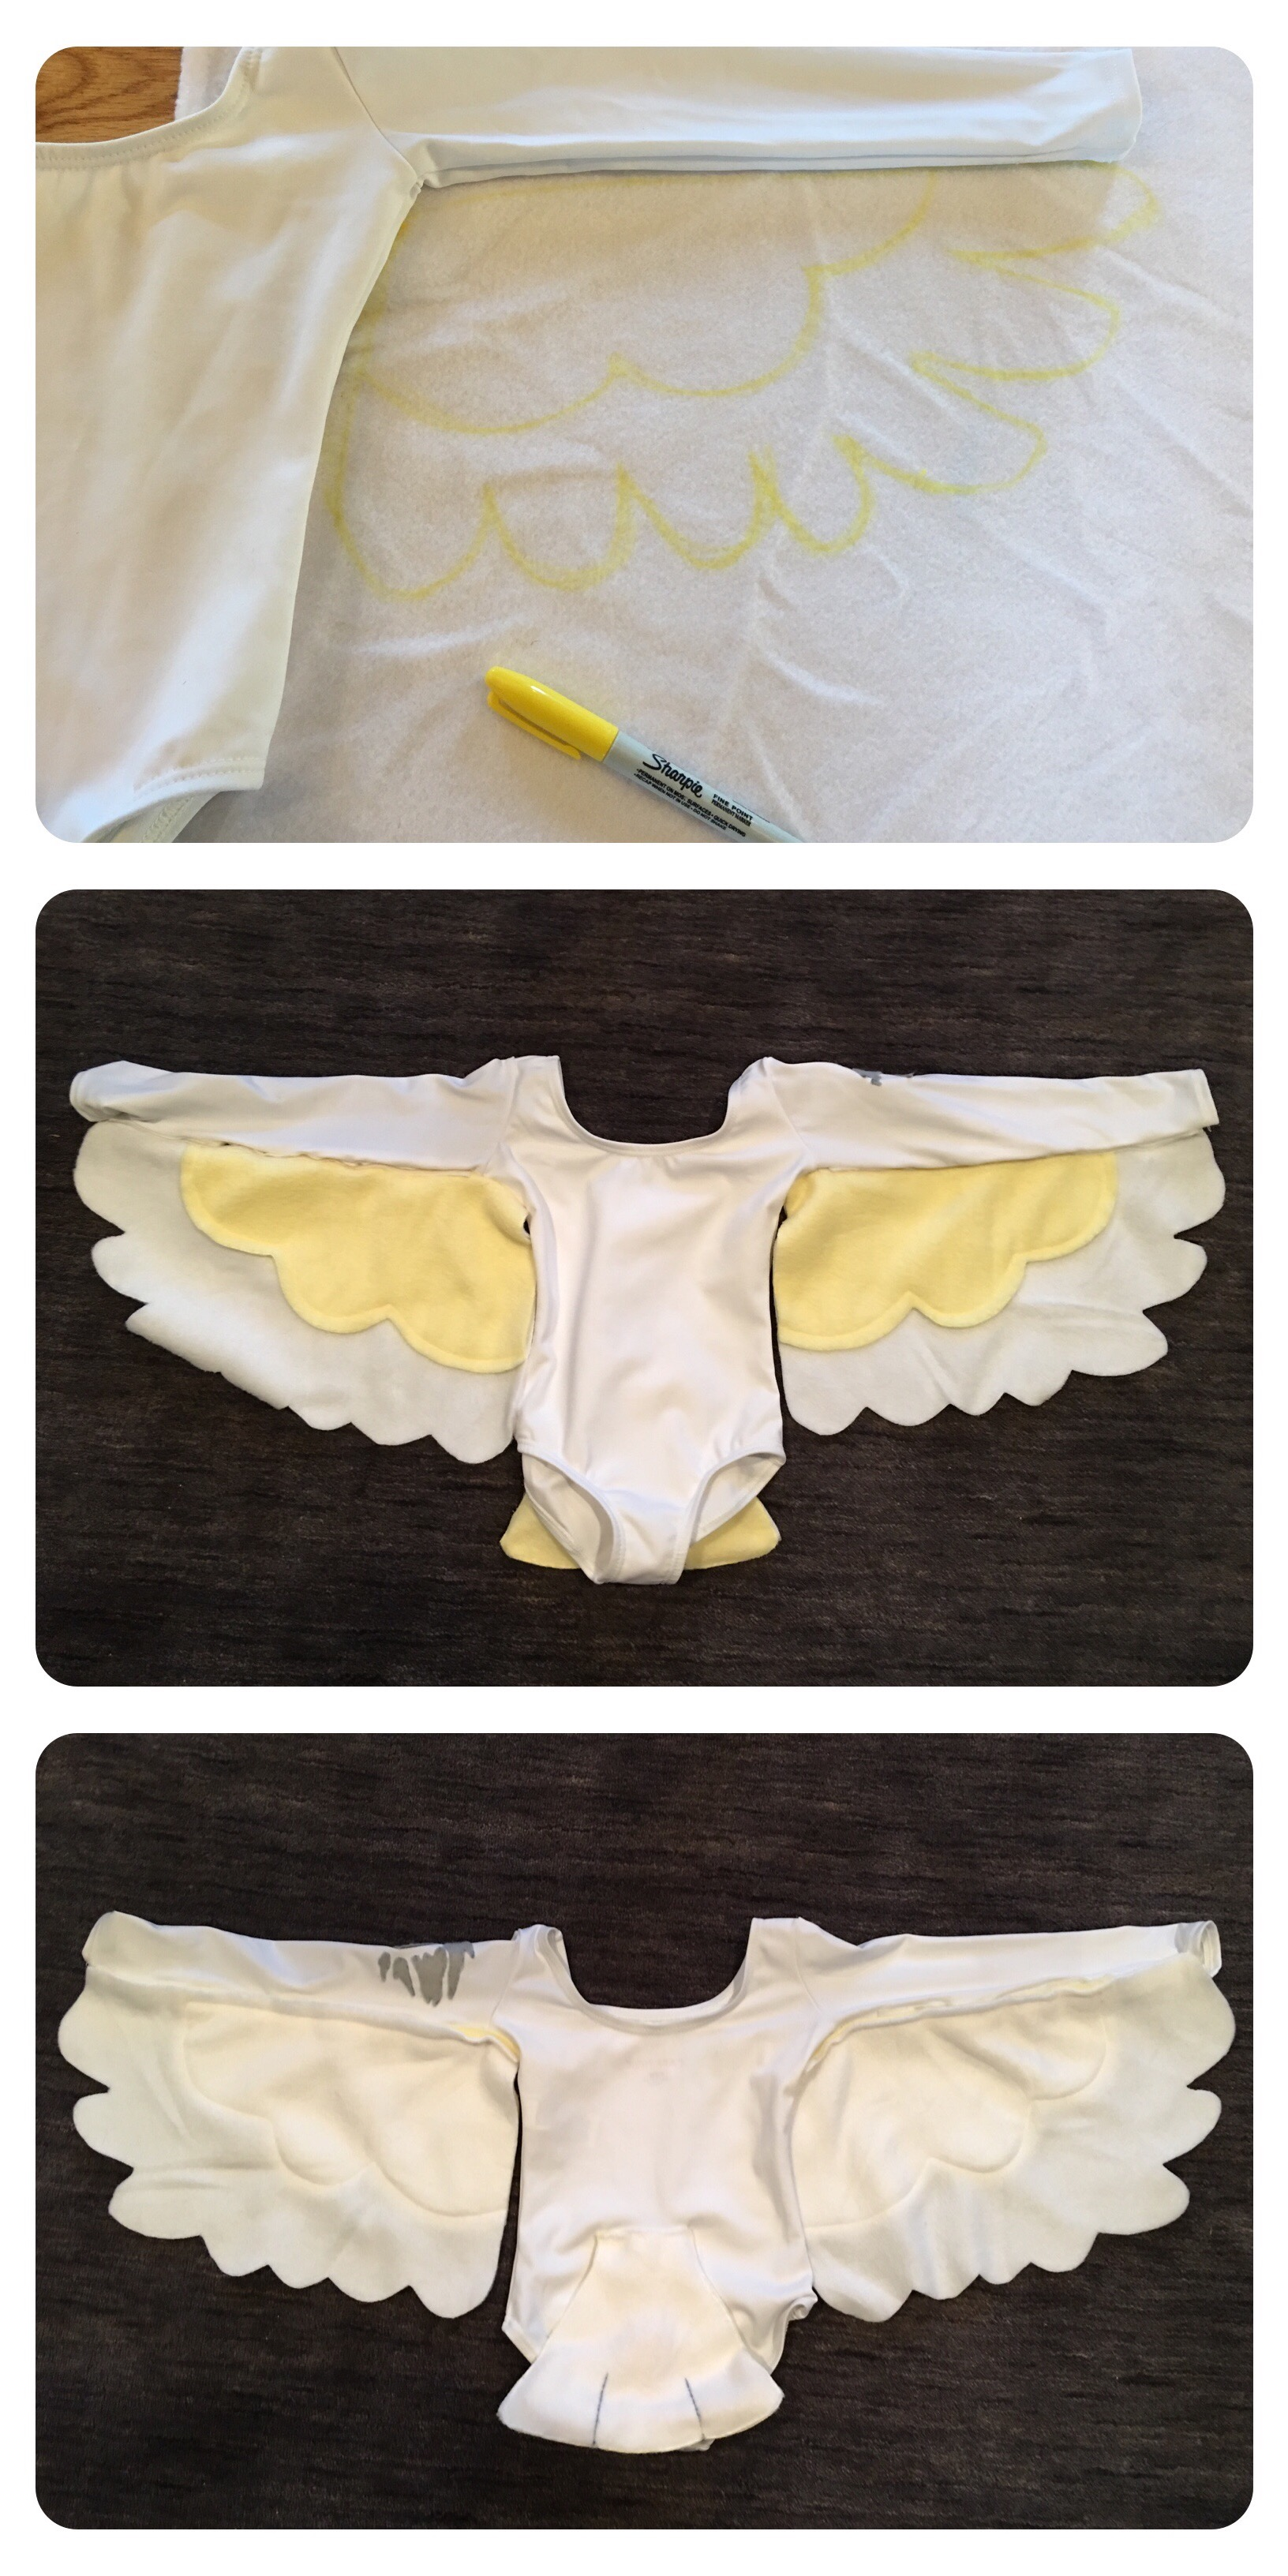 diy-ono-costume-wings-and-tail